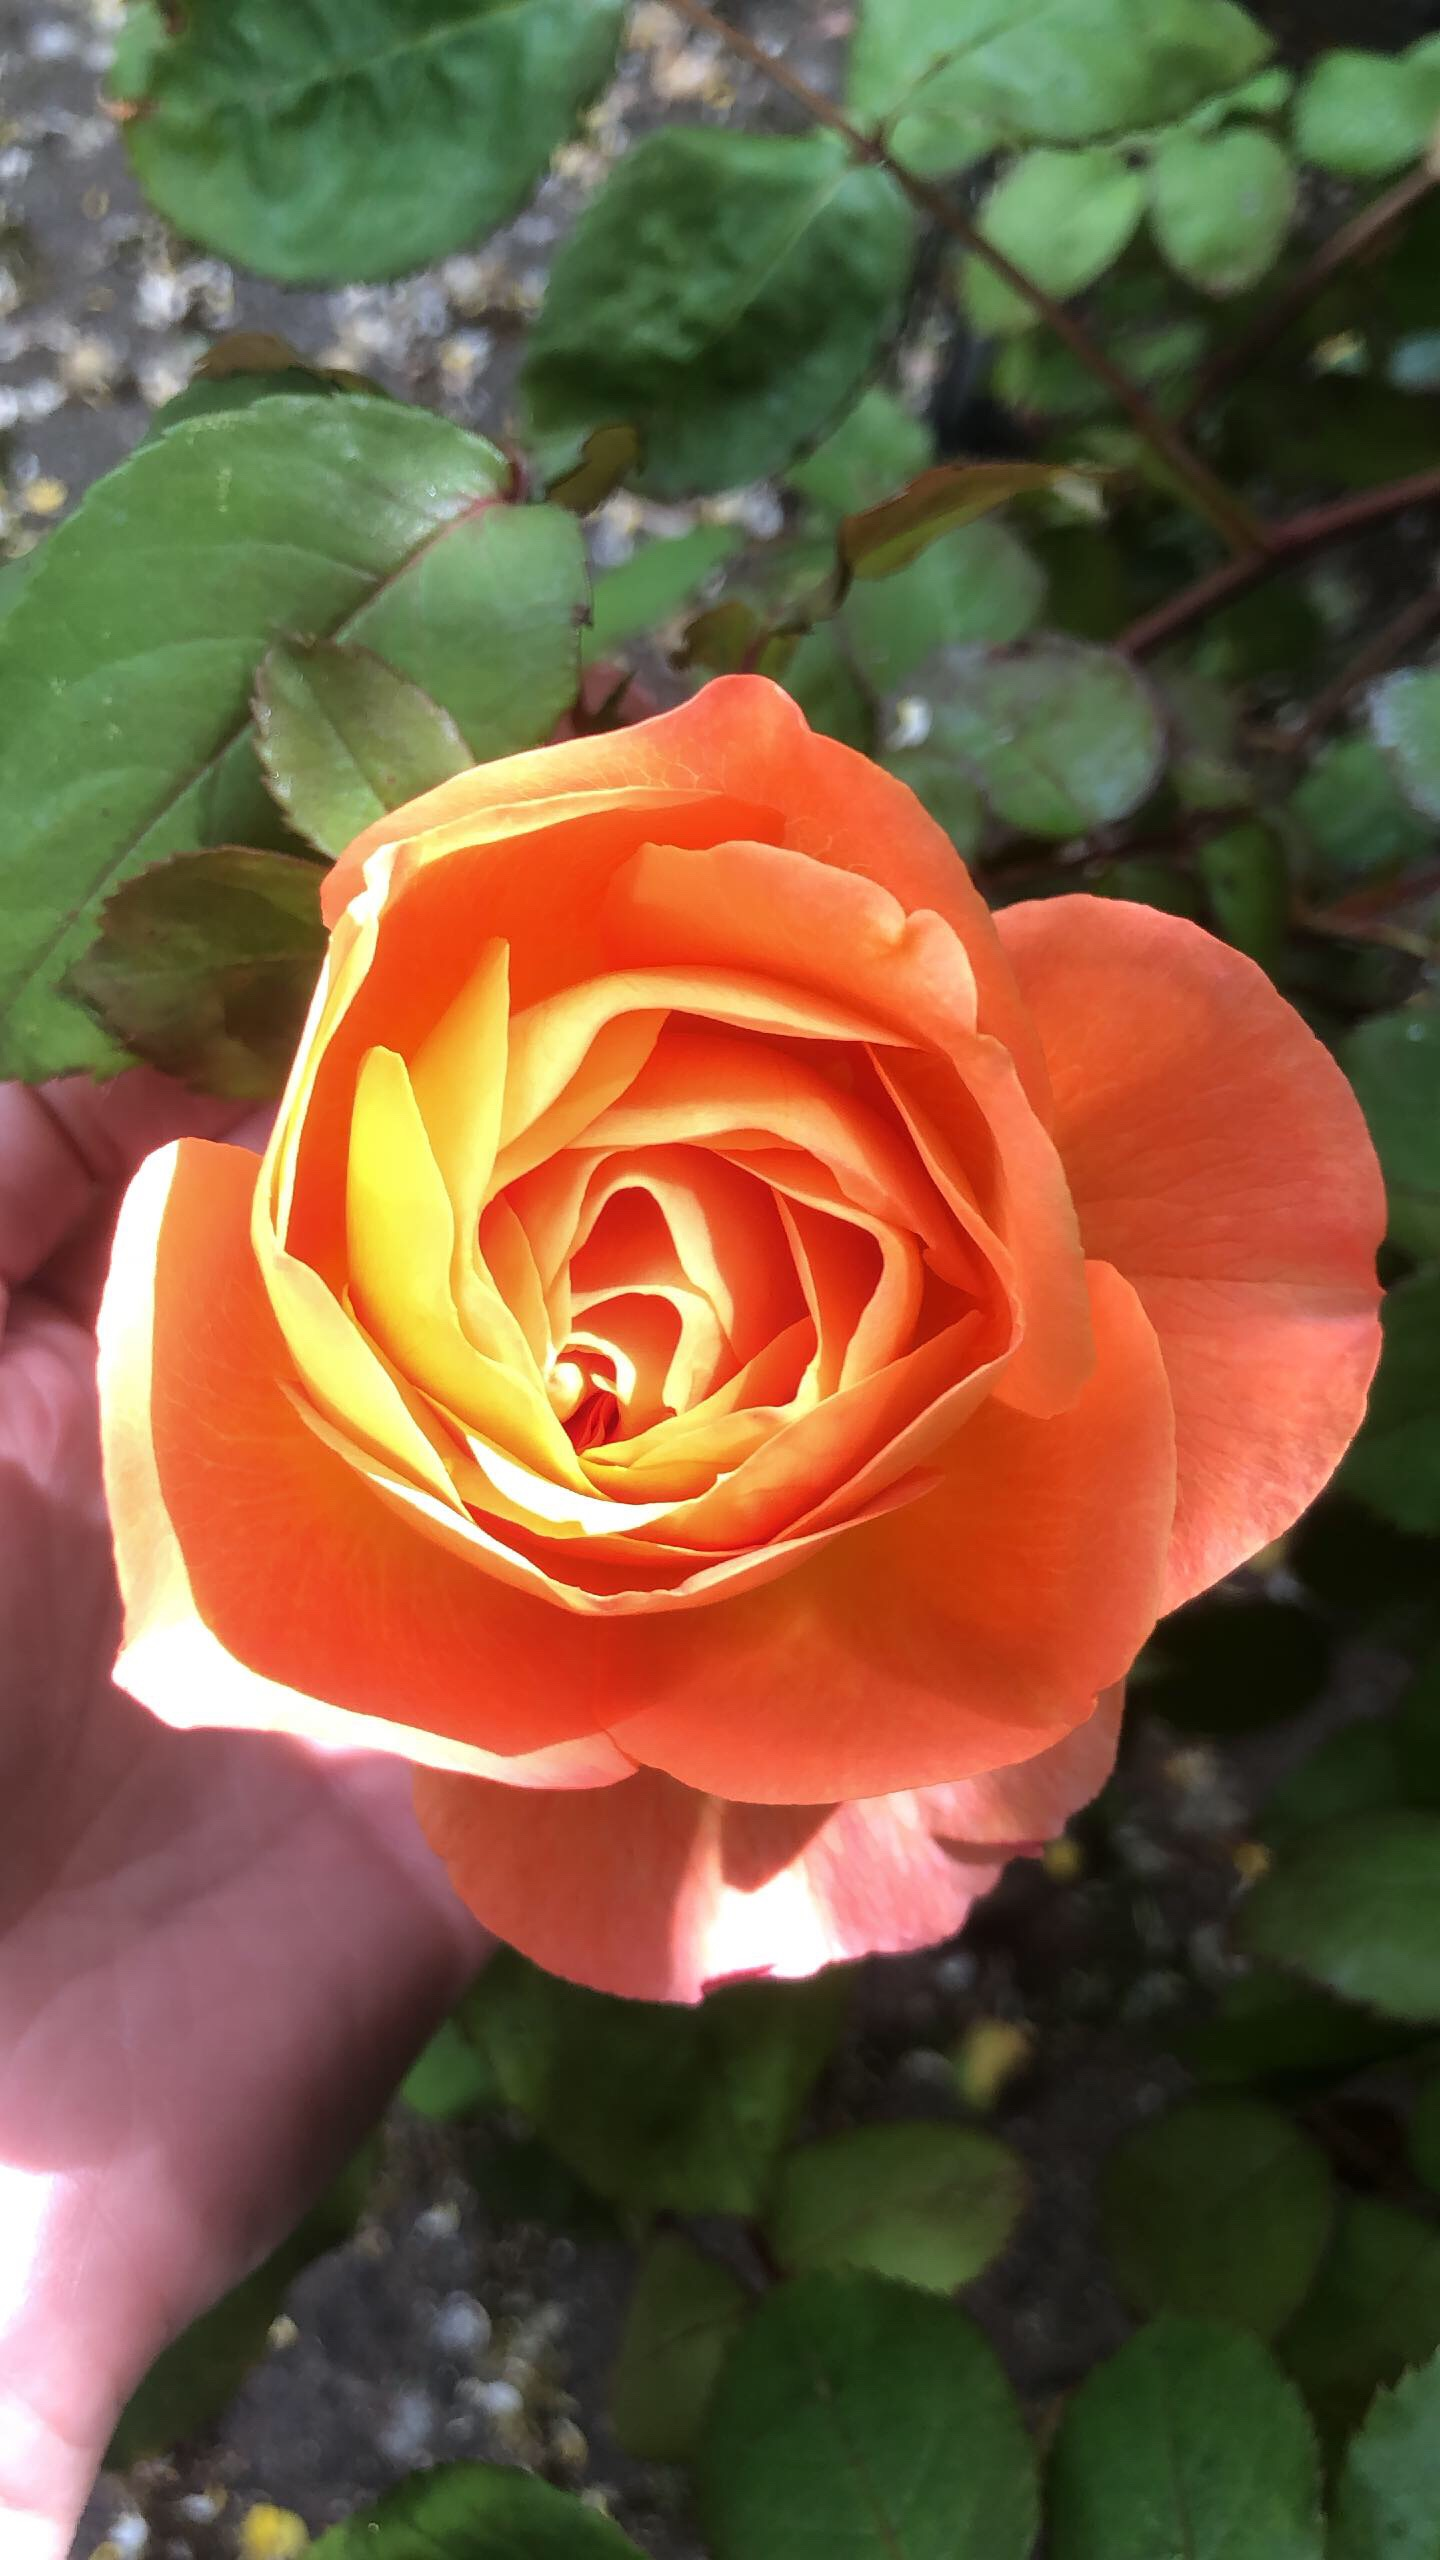 Sunrise Rose.jpg